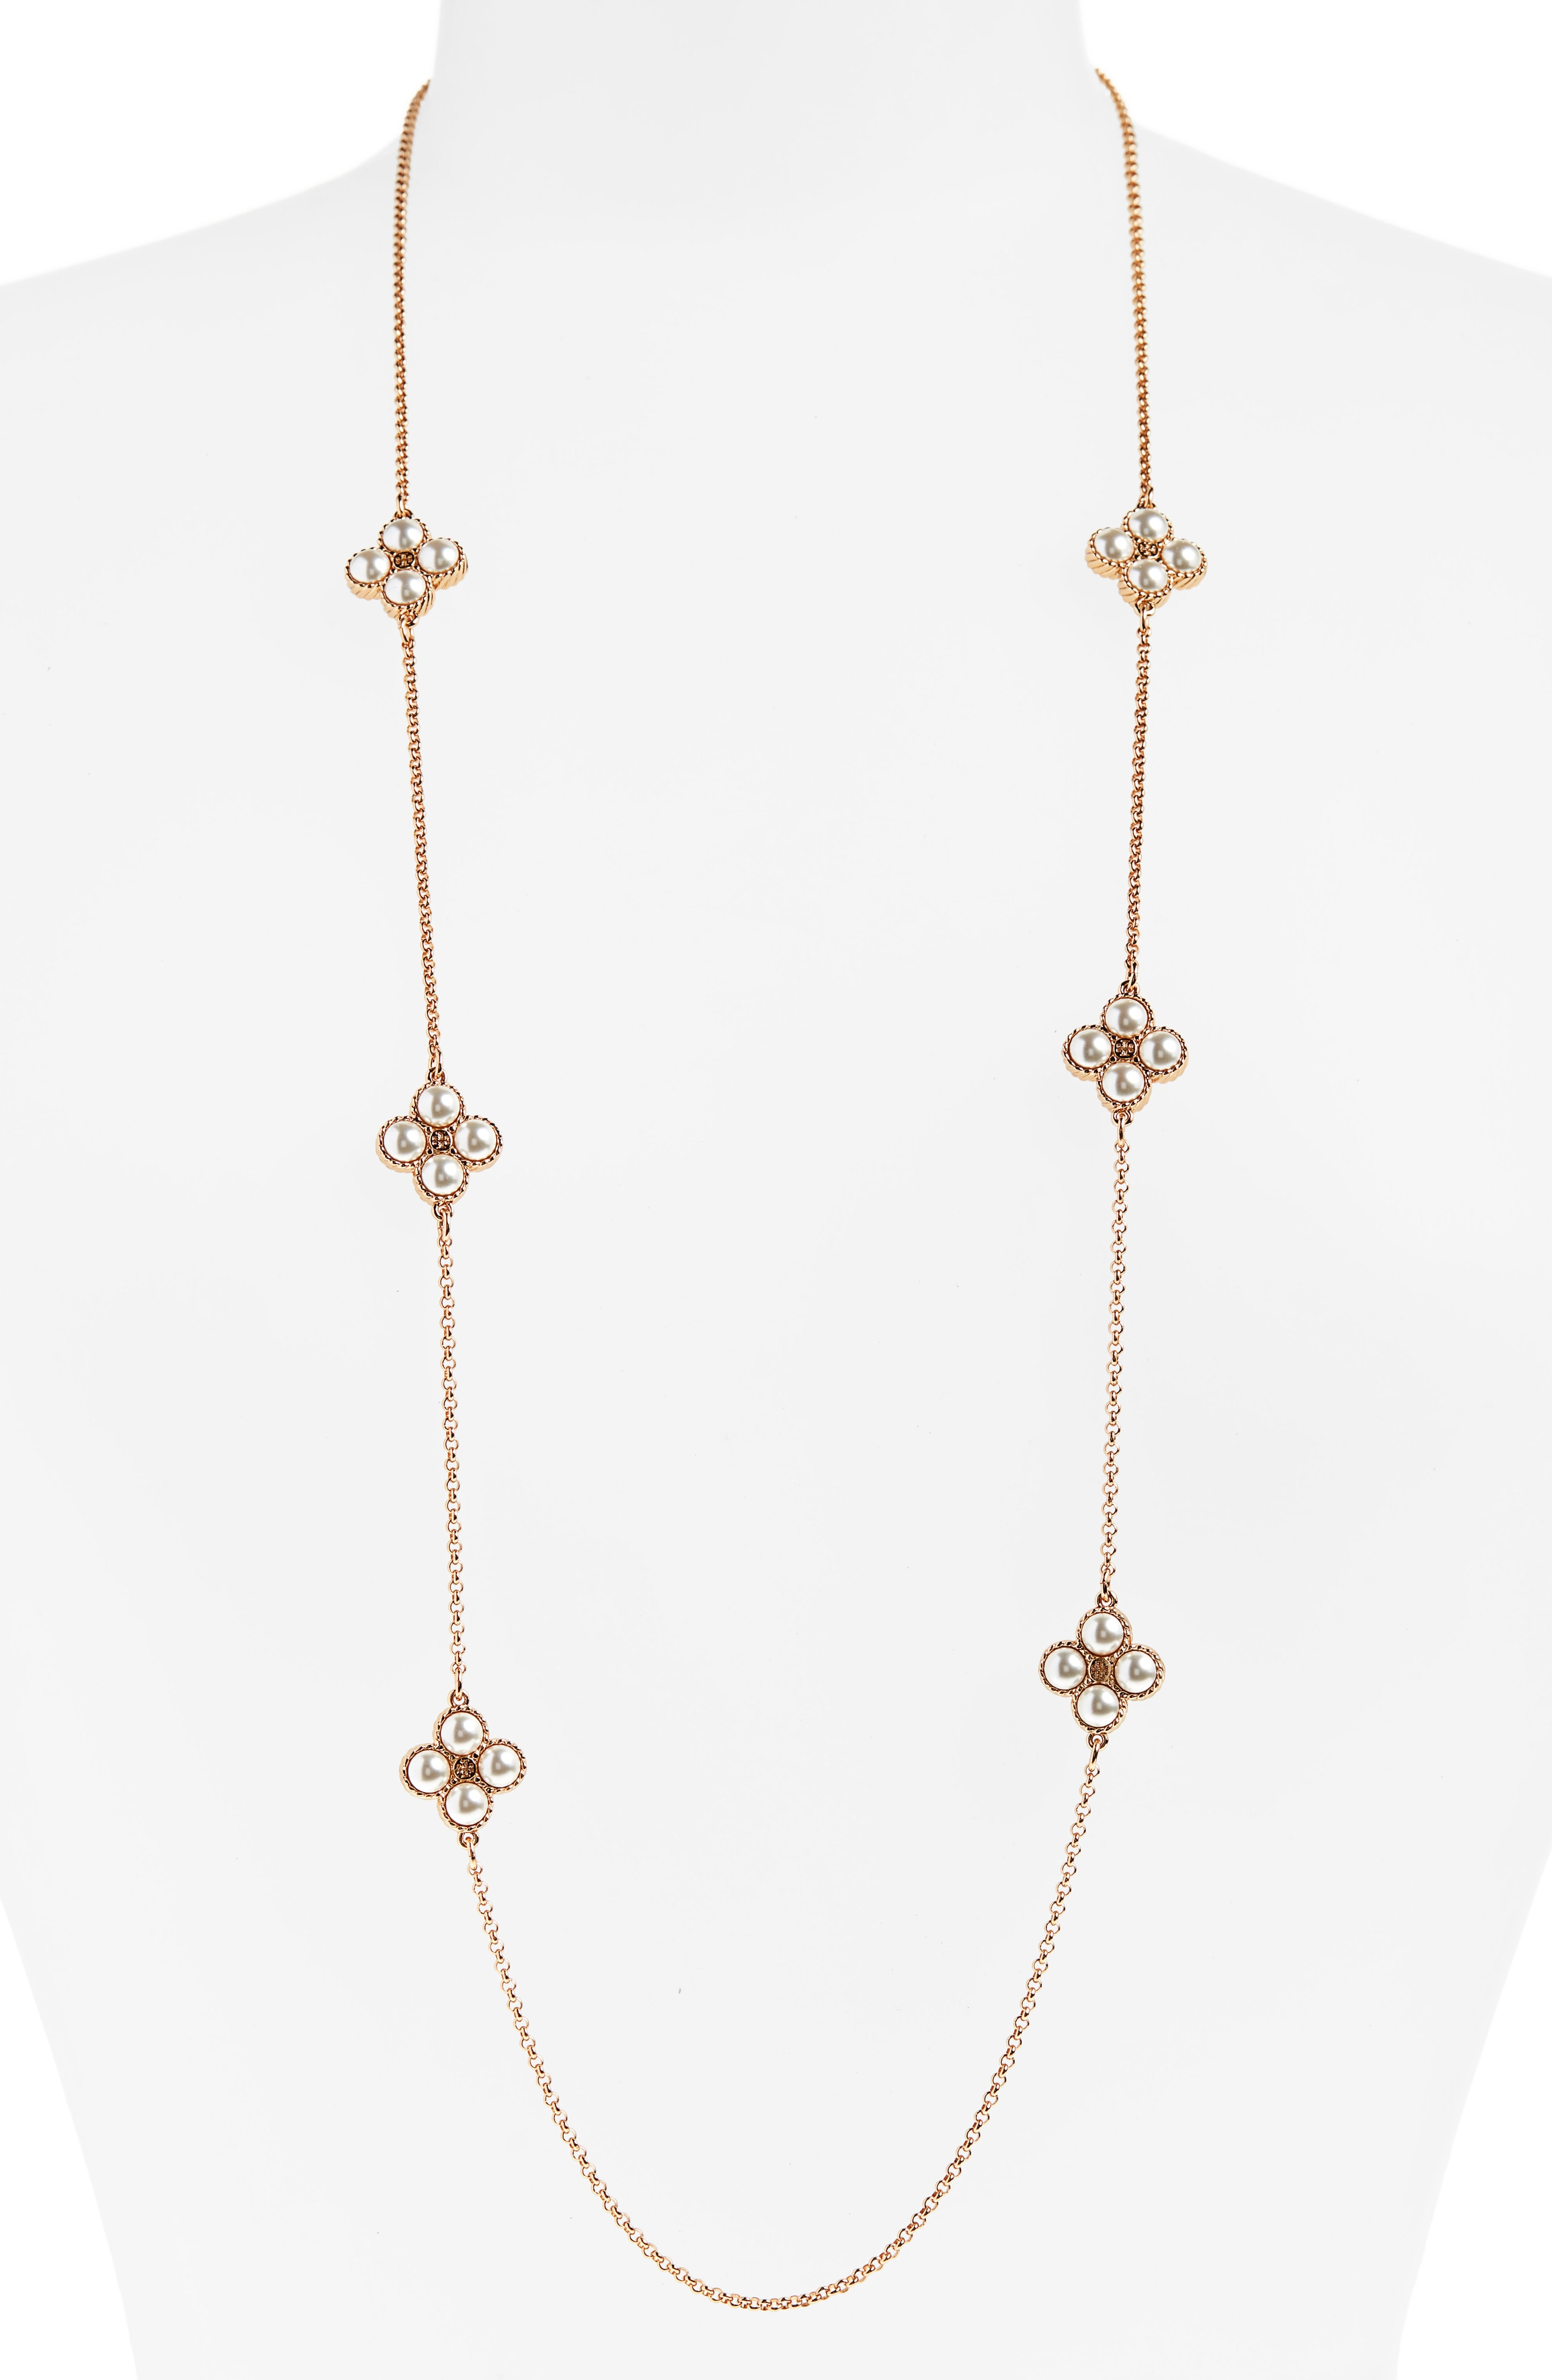 Tory Burch Rope Clover Station Necklace